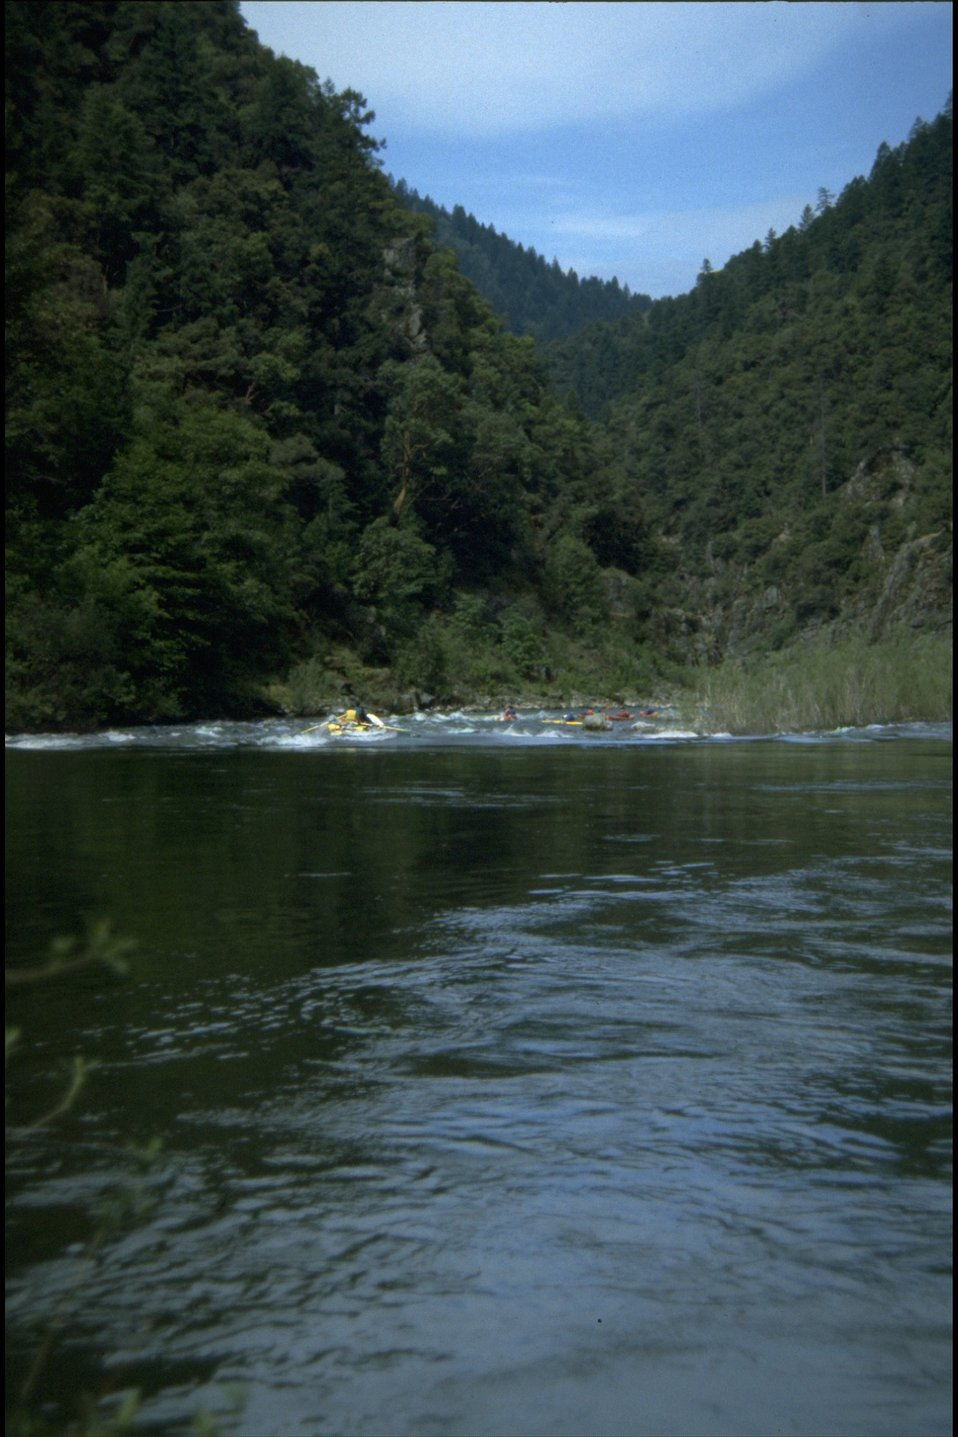 Floaters starting Grave Creek Rapids.